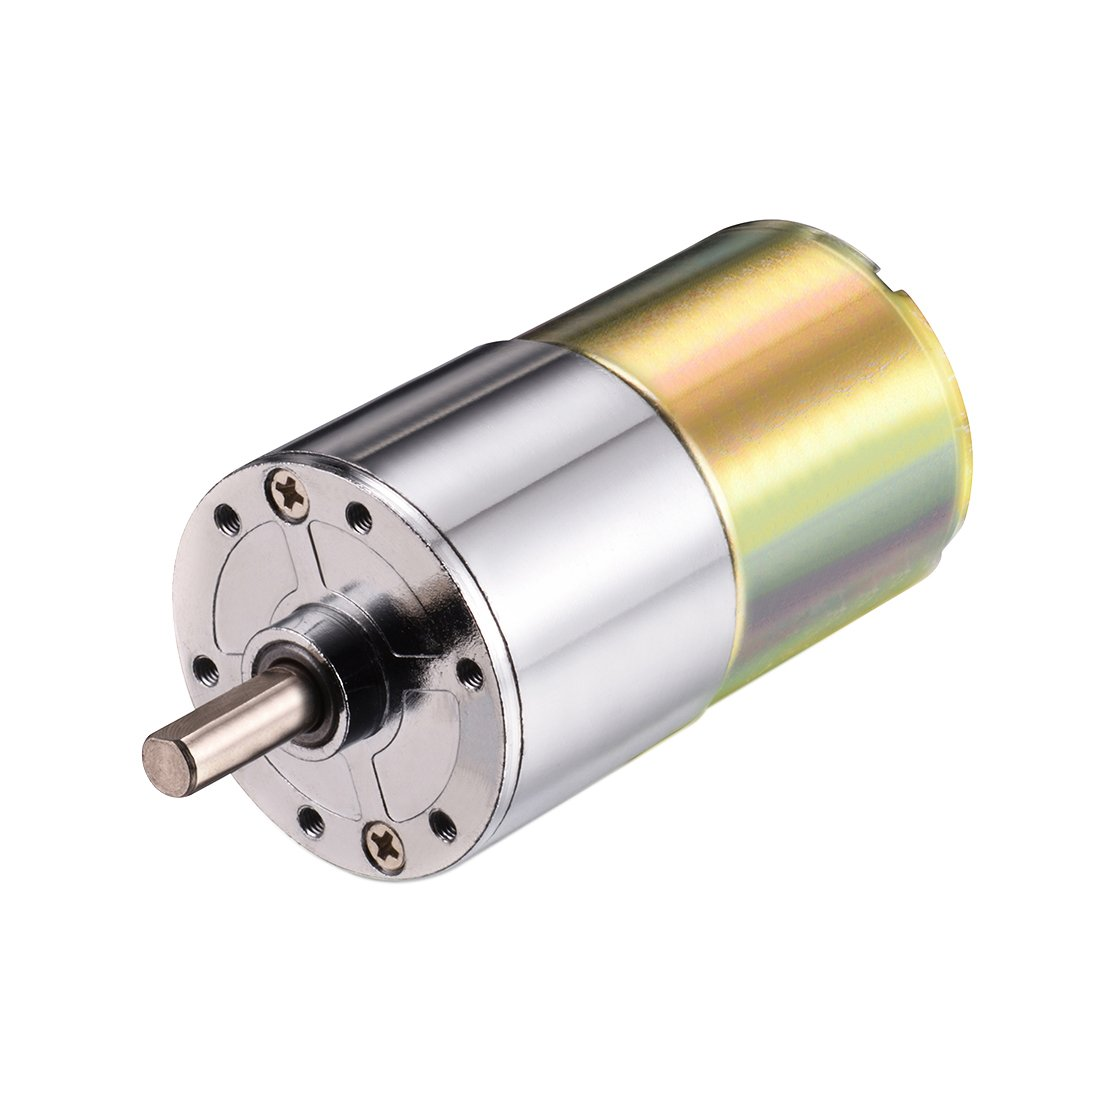 uxcell 12V DC 200RPM Gear Motor High Torque Electric Micro Speed Reduction Geared Motor Centric Output Shaft CECOMINOD039923